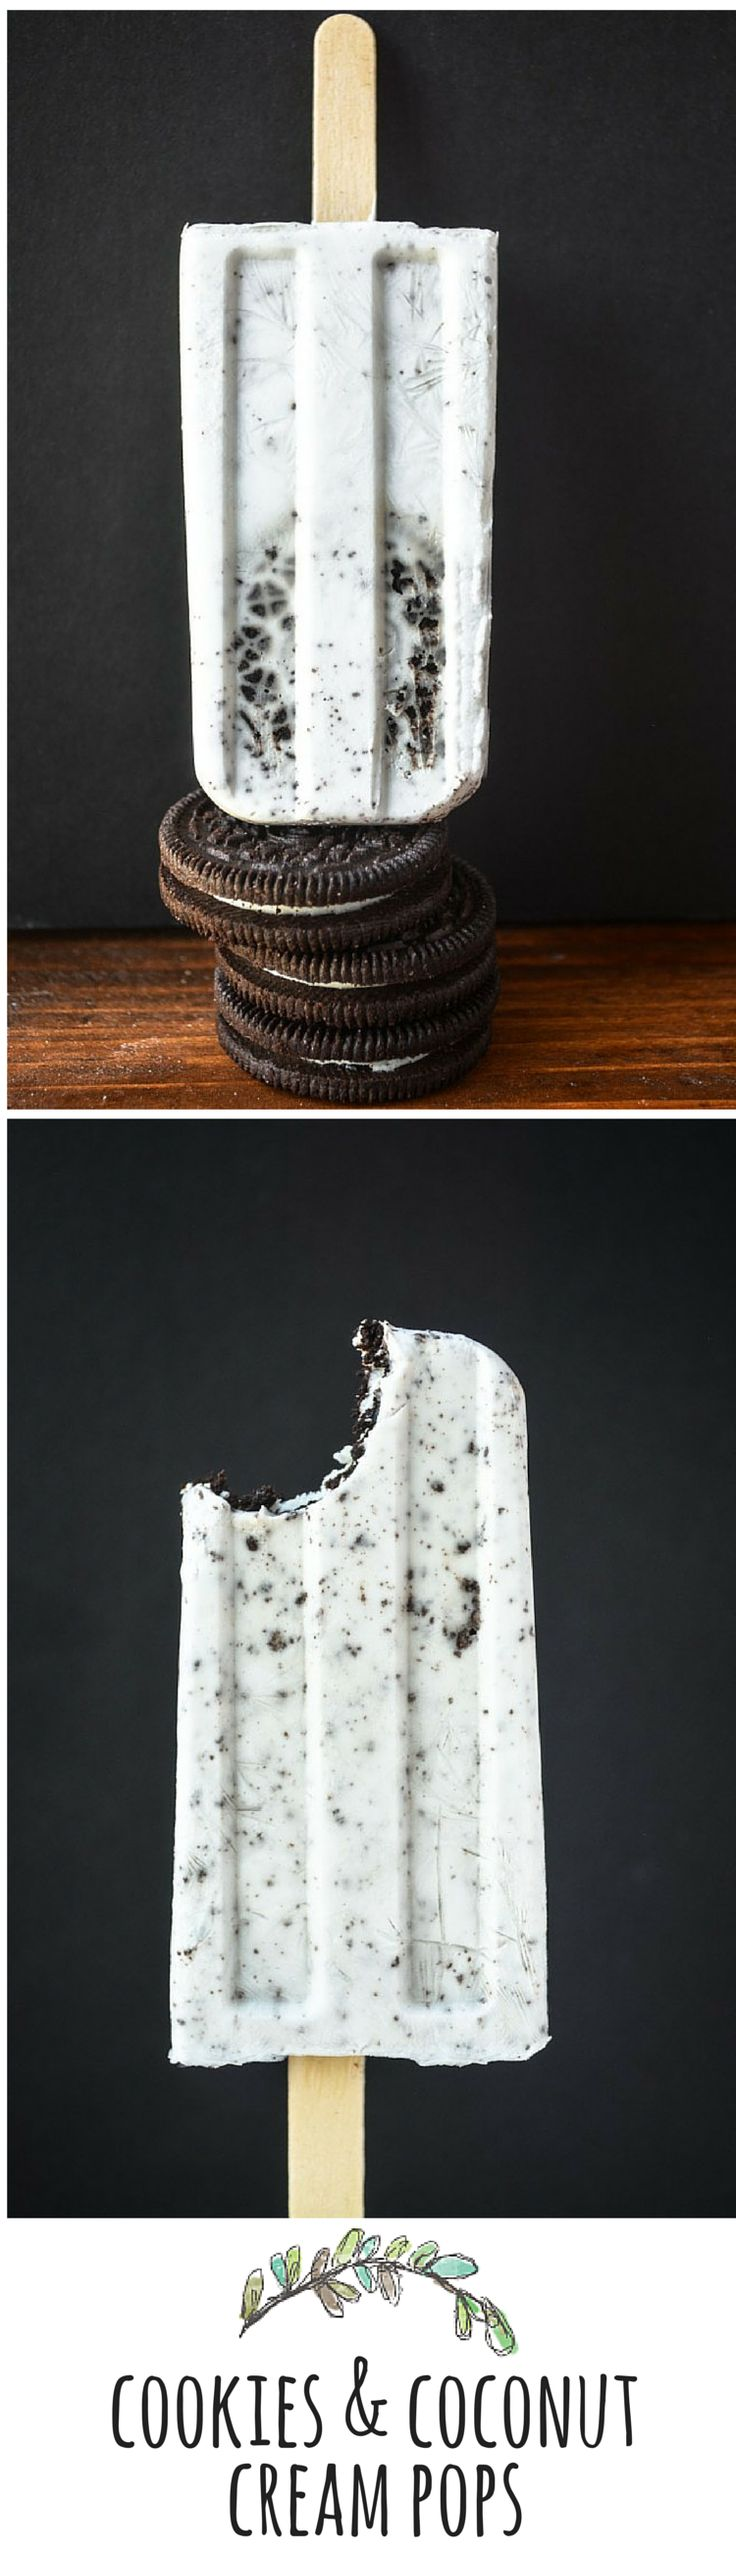 There's nothing better than OREO Cookies and Coconut Milk Popsicles on a beautiful day! OREO cookies blended with coconut milk for a refreshing dessert.